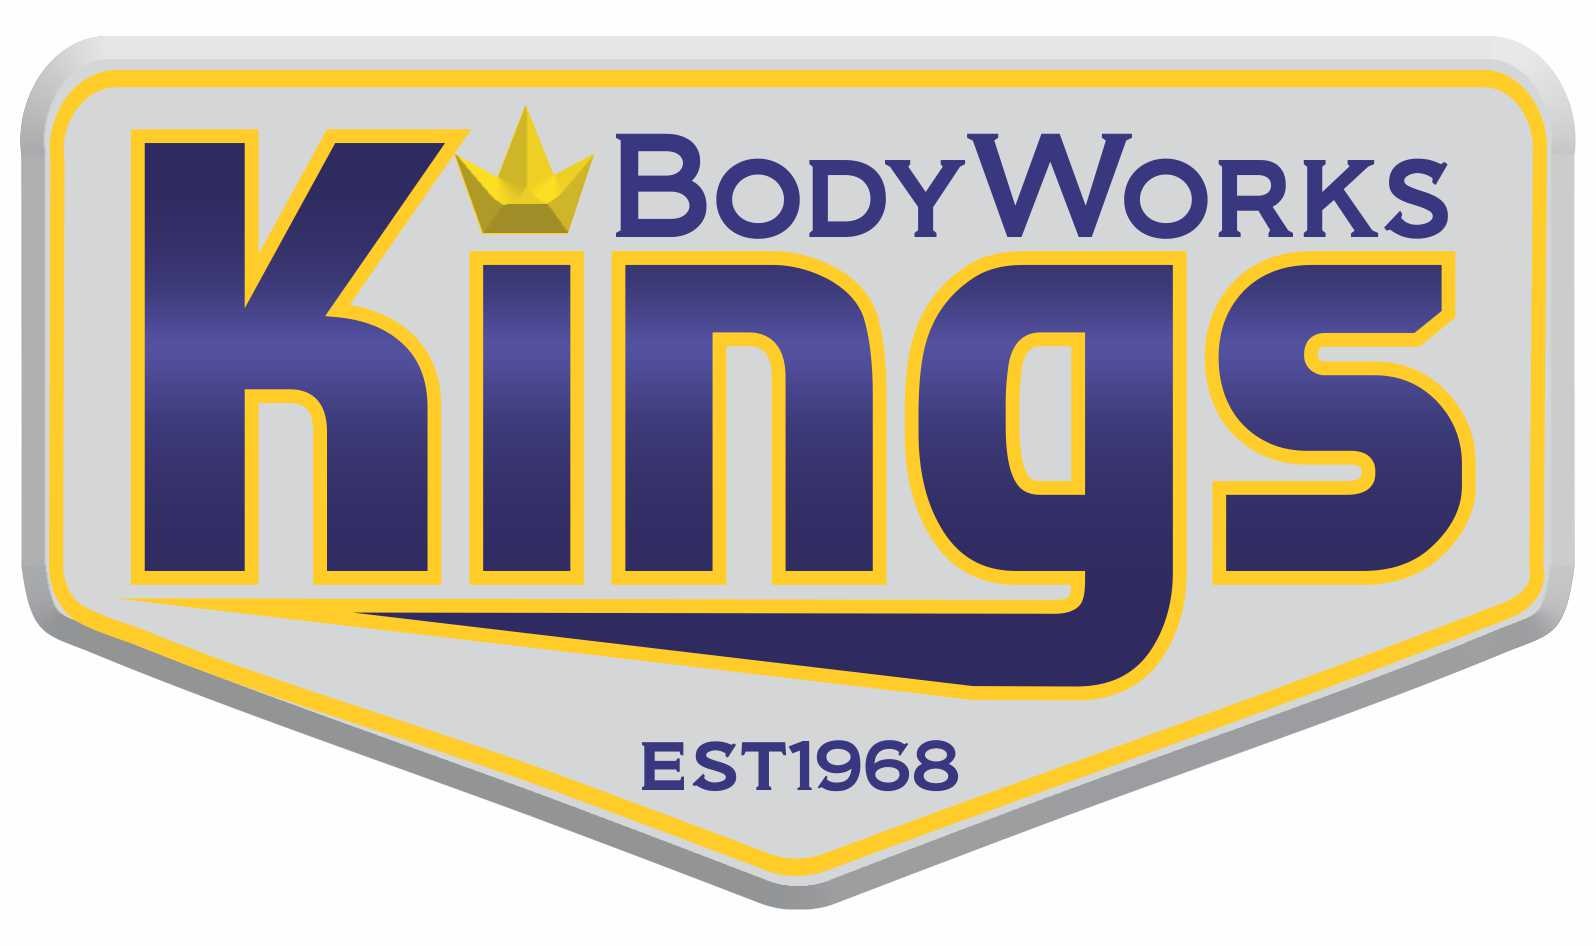 Kings Bodyworks